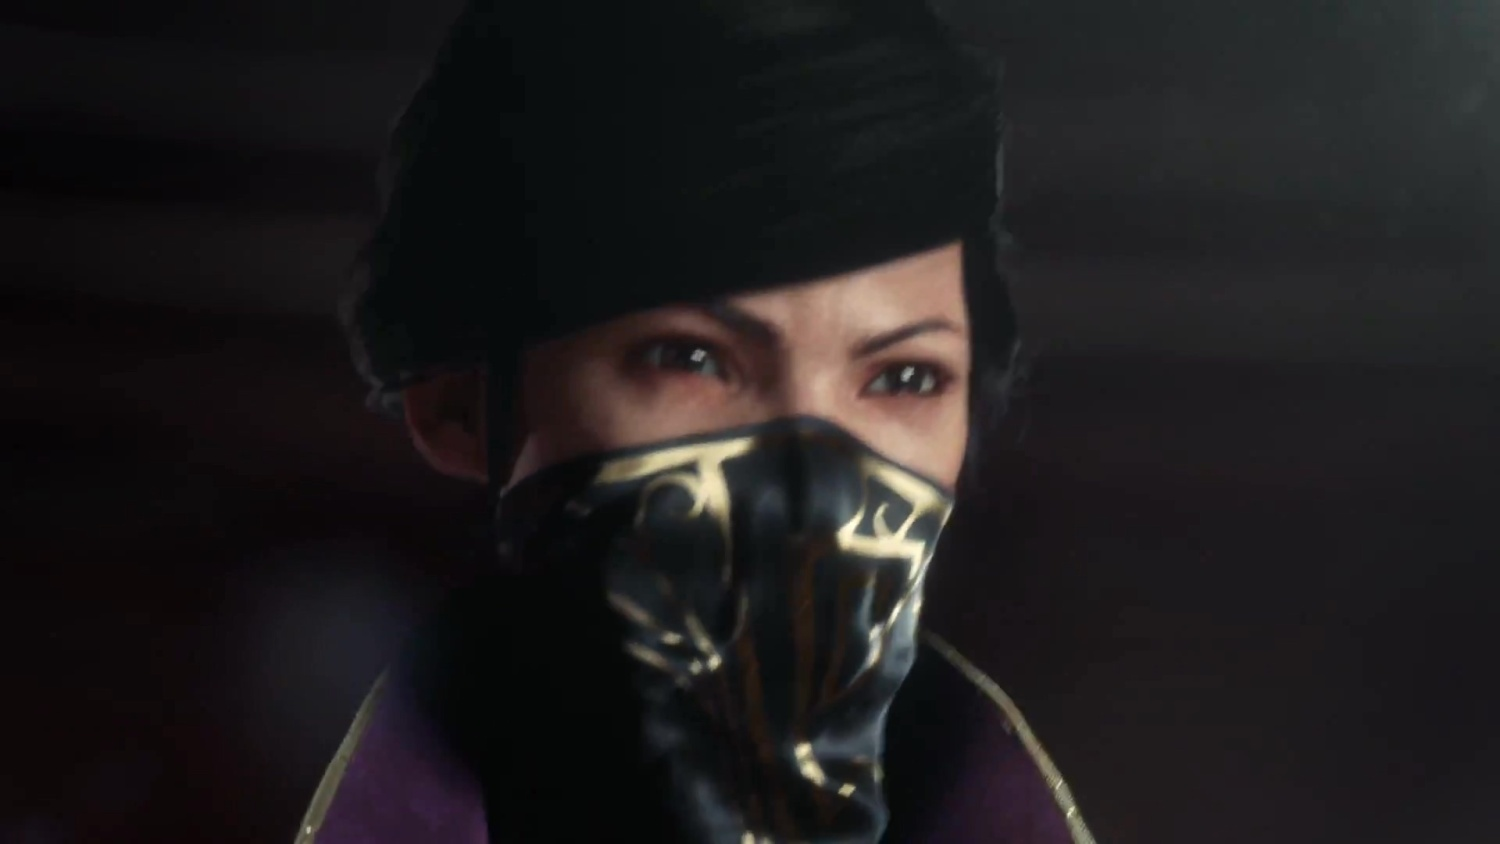 Emily Kaldwin in Dishonored 2